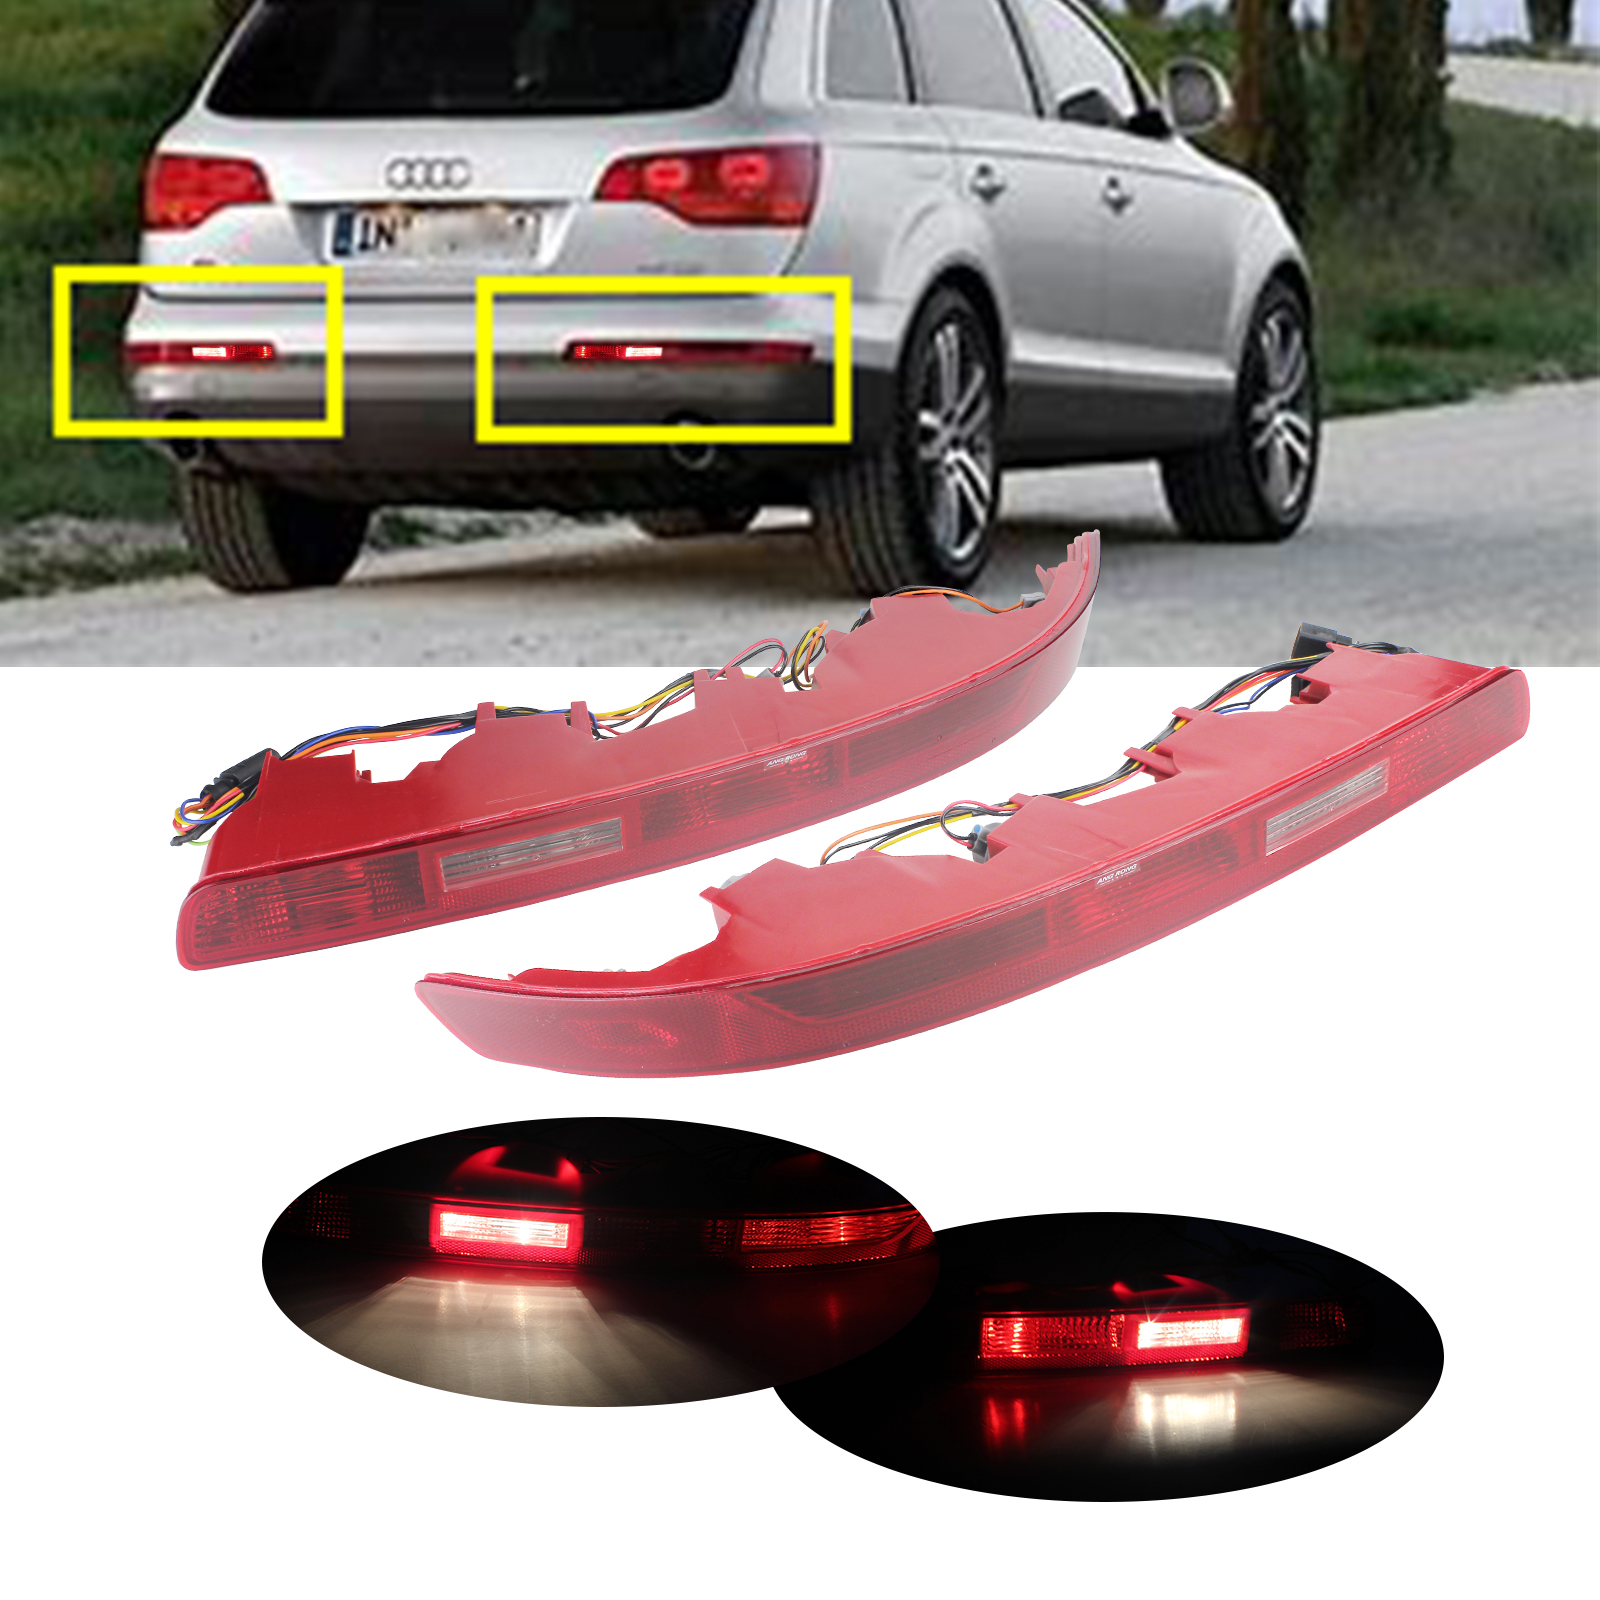 ANGRONG For Audi Q7 4L 2006-2015 Rear Bumper Reflector Tail Stop Brake Lights Lamps Pair L&R(CA402) 1 pair rear tail brake lights bumper reflector tail brake stop light for land rover range rover sport 2005 2006 2007 2013